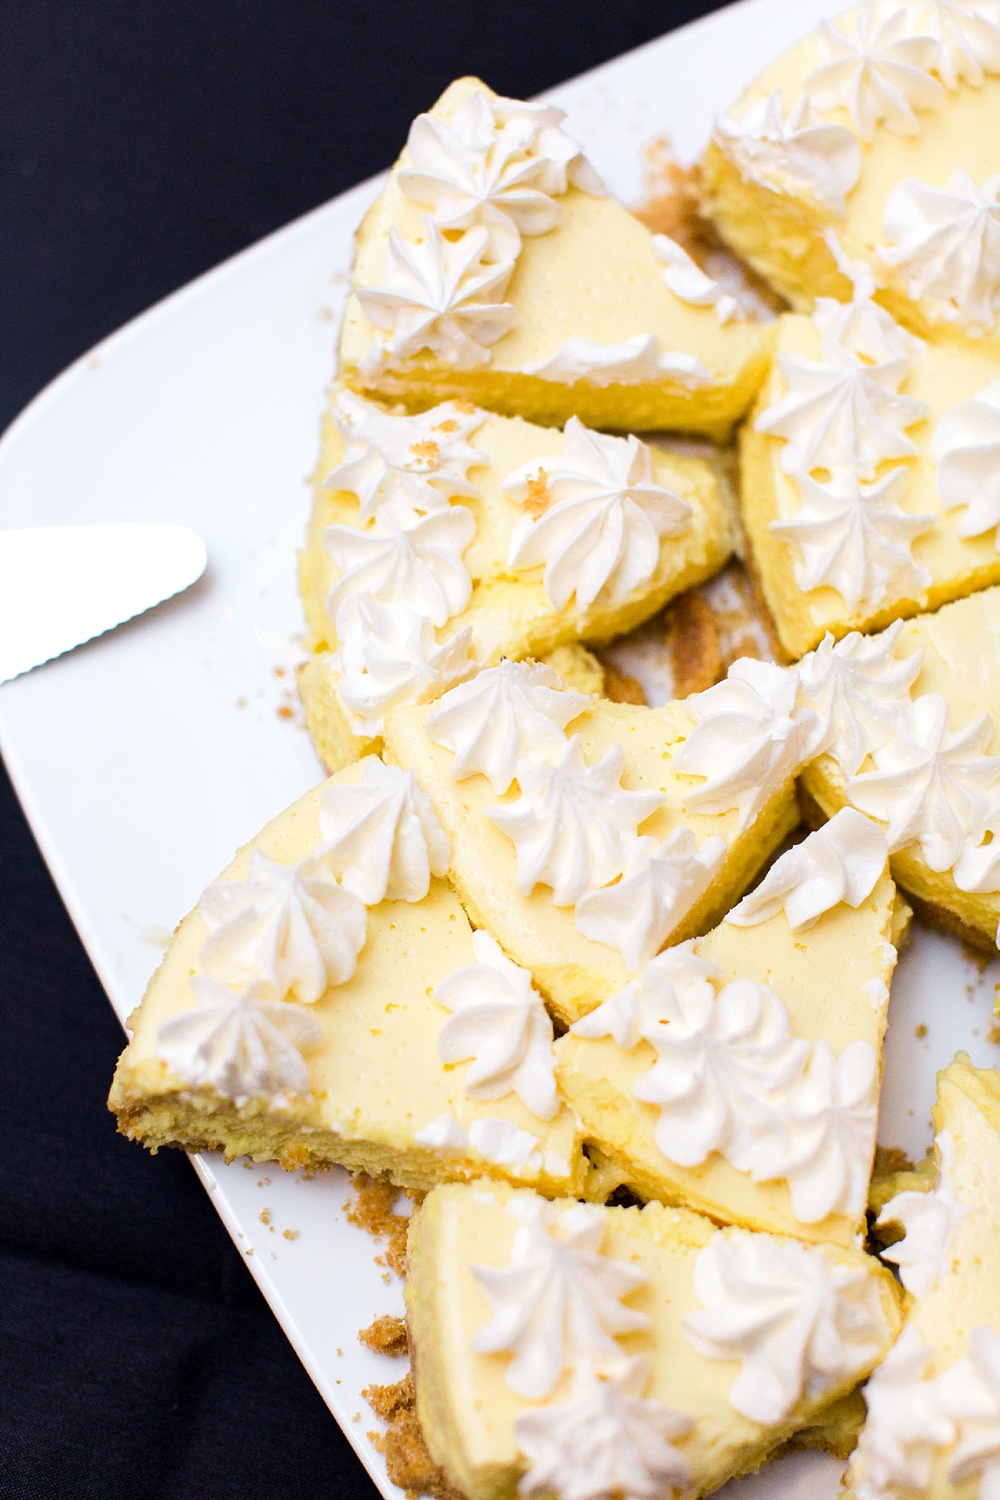 platter of key lime pie slices